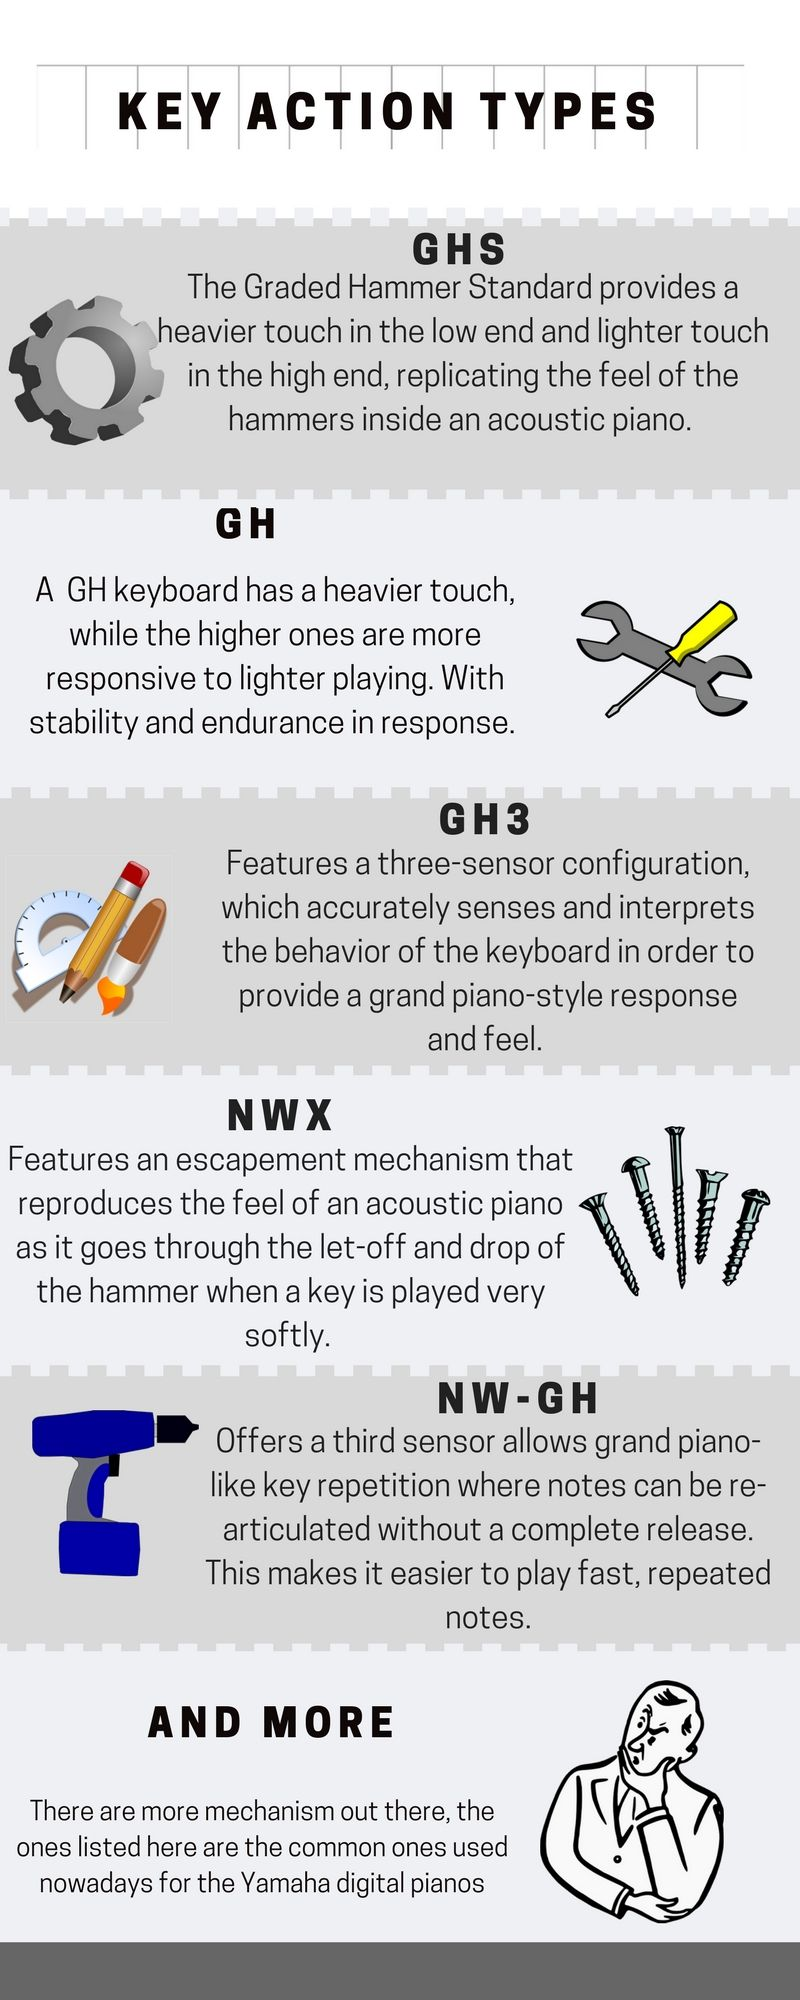 Weighted keys mechanism the different types used by Yamaha, this are just some of the many